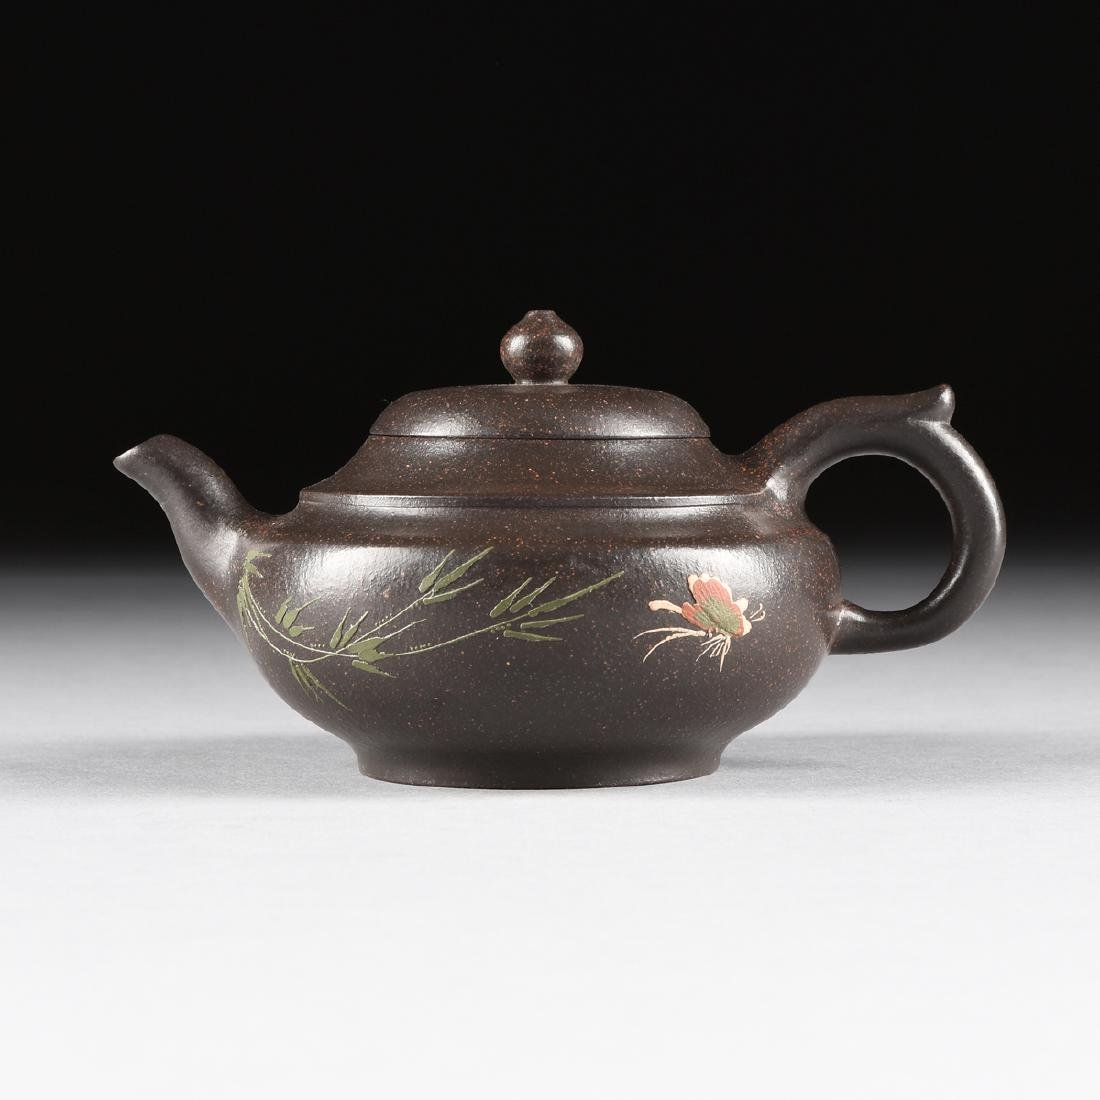 A CHINESE RED STONEWARE TEAPOT, YIXING PROVENCE,